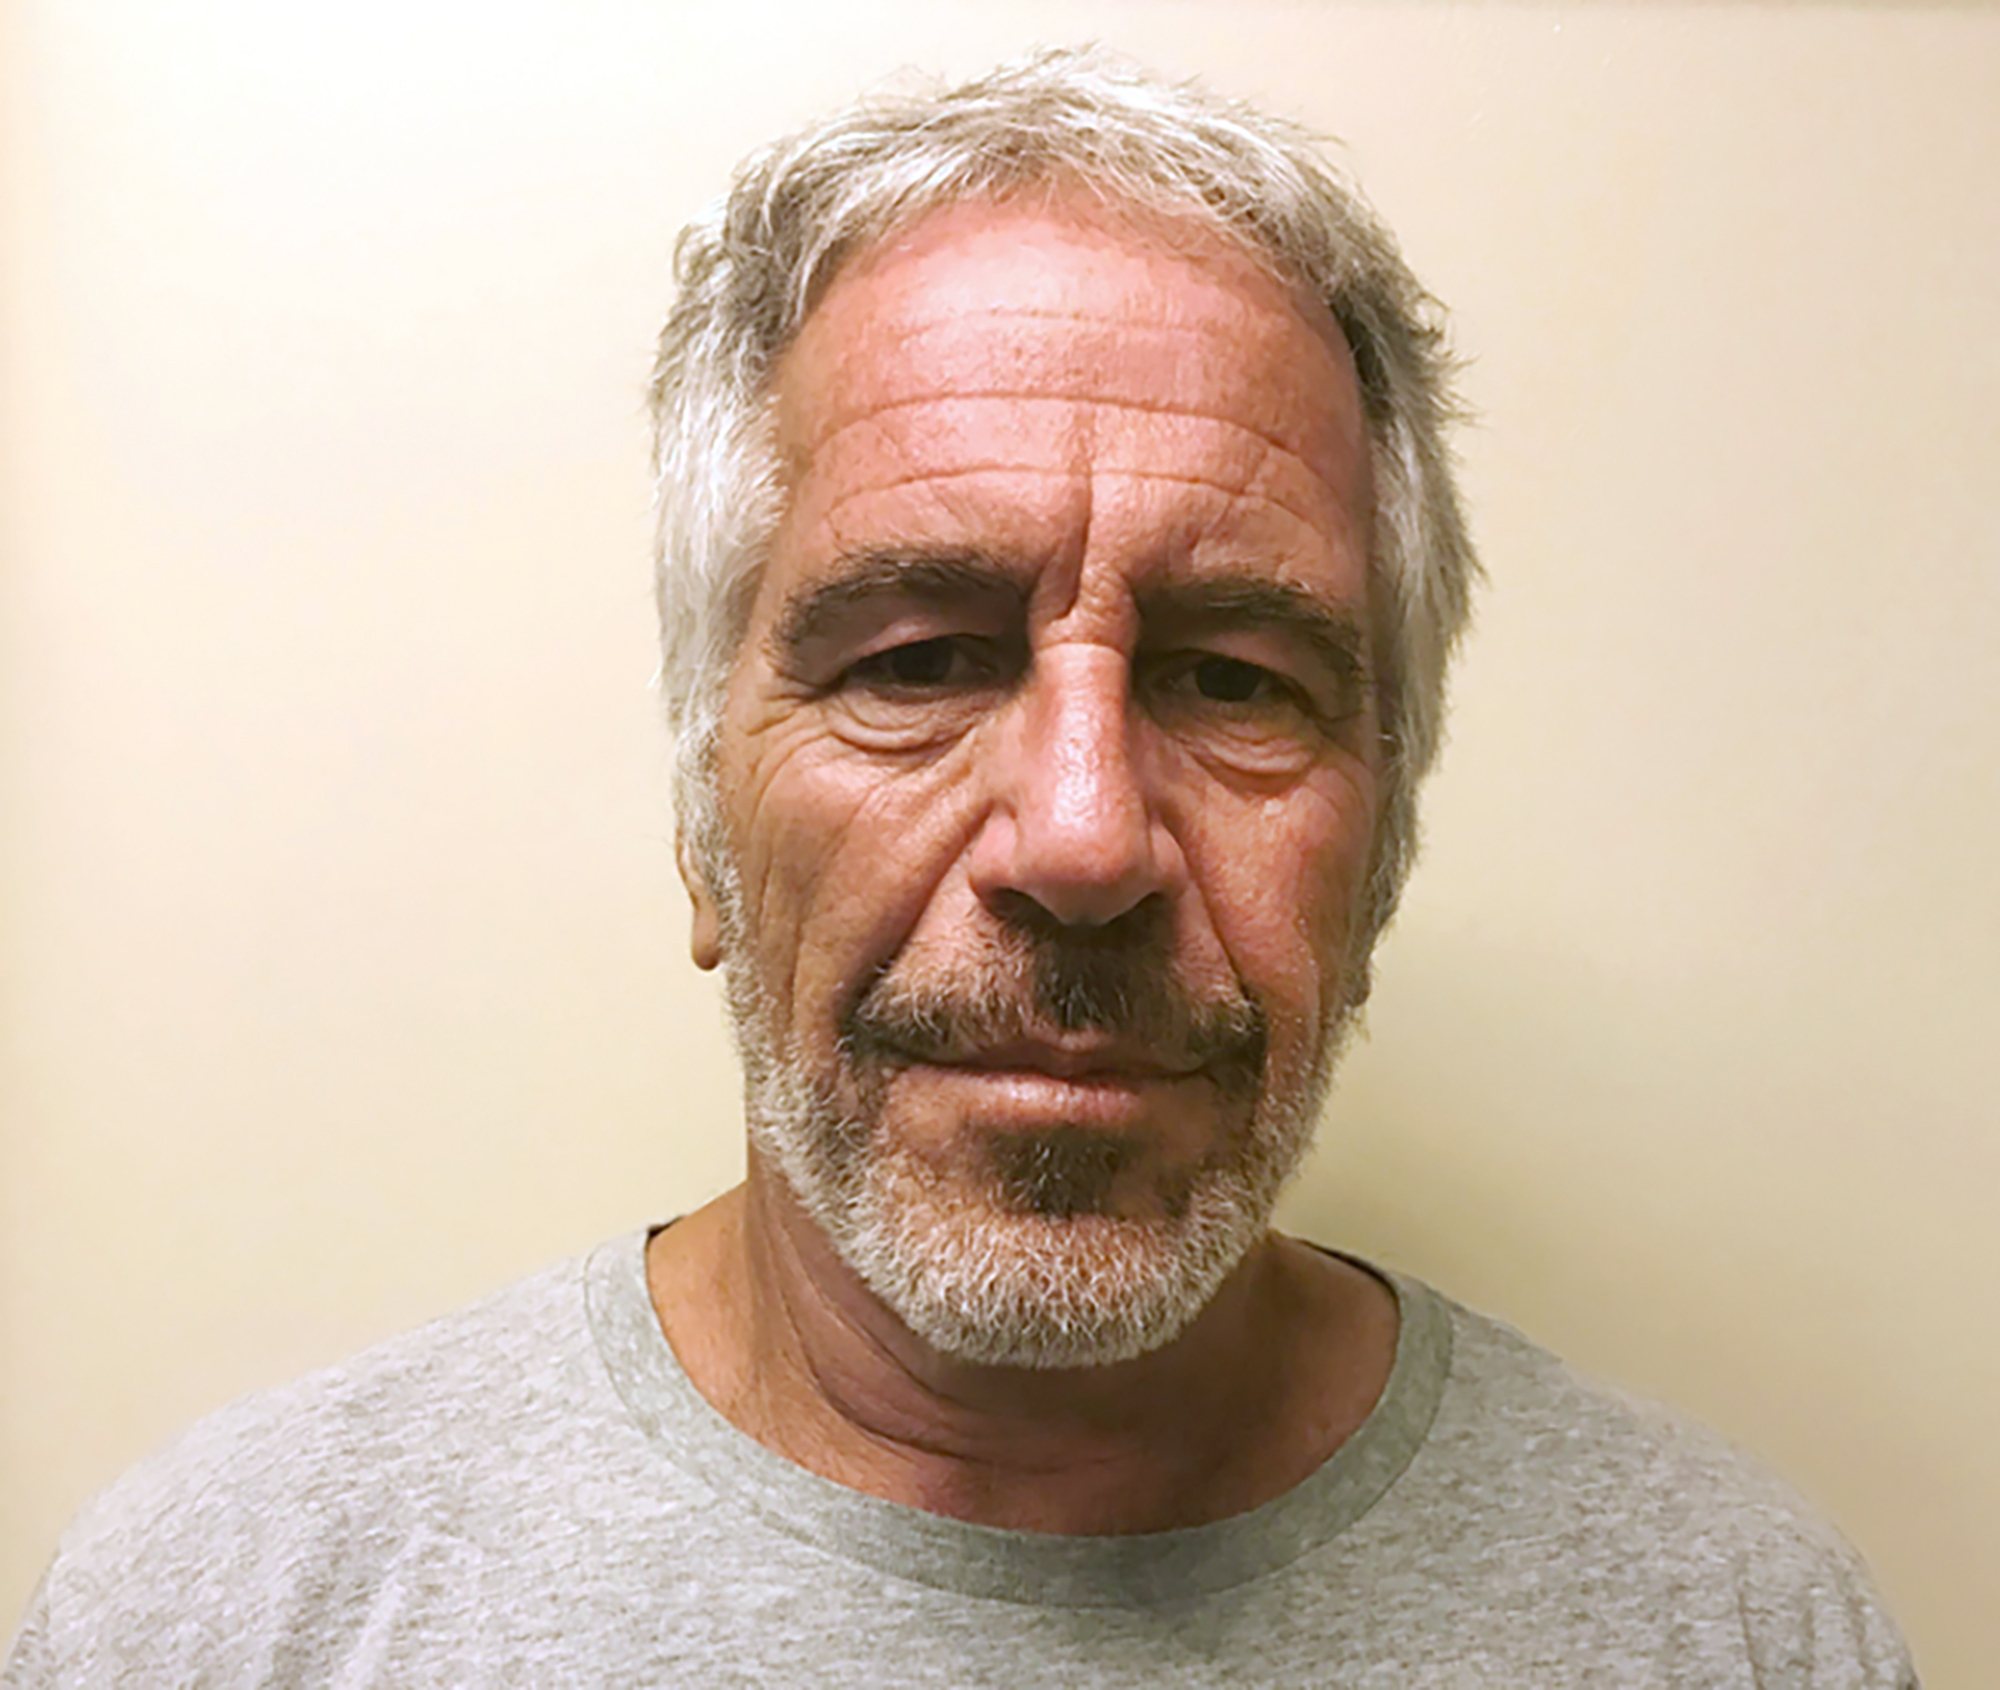 FILE - This March 28, 2017, file photo, provided by the New York State Sex Offender Registry shows Jeffrey Epstein. A judge is expected to discuss plans for the unsealing of more court records in a civil case involving sexual abuse claims against the financier Epstein. The hearing in Manhattan federal court Wednesday, Sept. 4, 2019, was ordered after a federal appeals court in New York ordered U.S. District Judge Loretta Preska to release the records after considering the privacy interests of third-parties. (New York State Sex Offender Registry via AP, File)